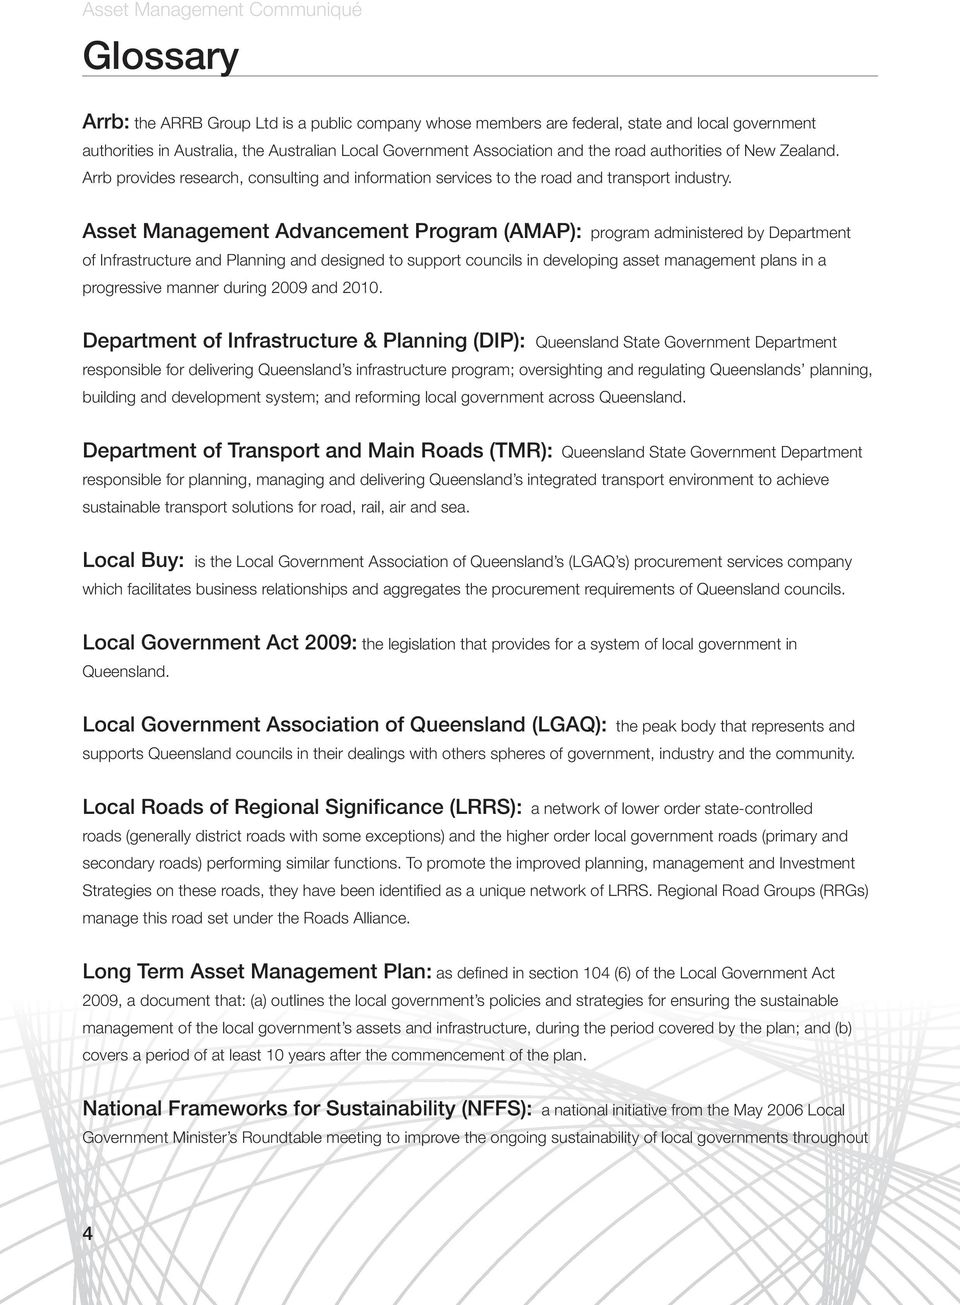 Asset Management Advancement Program (AMAP): program administered by Department of Infrastructure and Planning and designed to support councils in developing asset management plans in a progressive